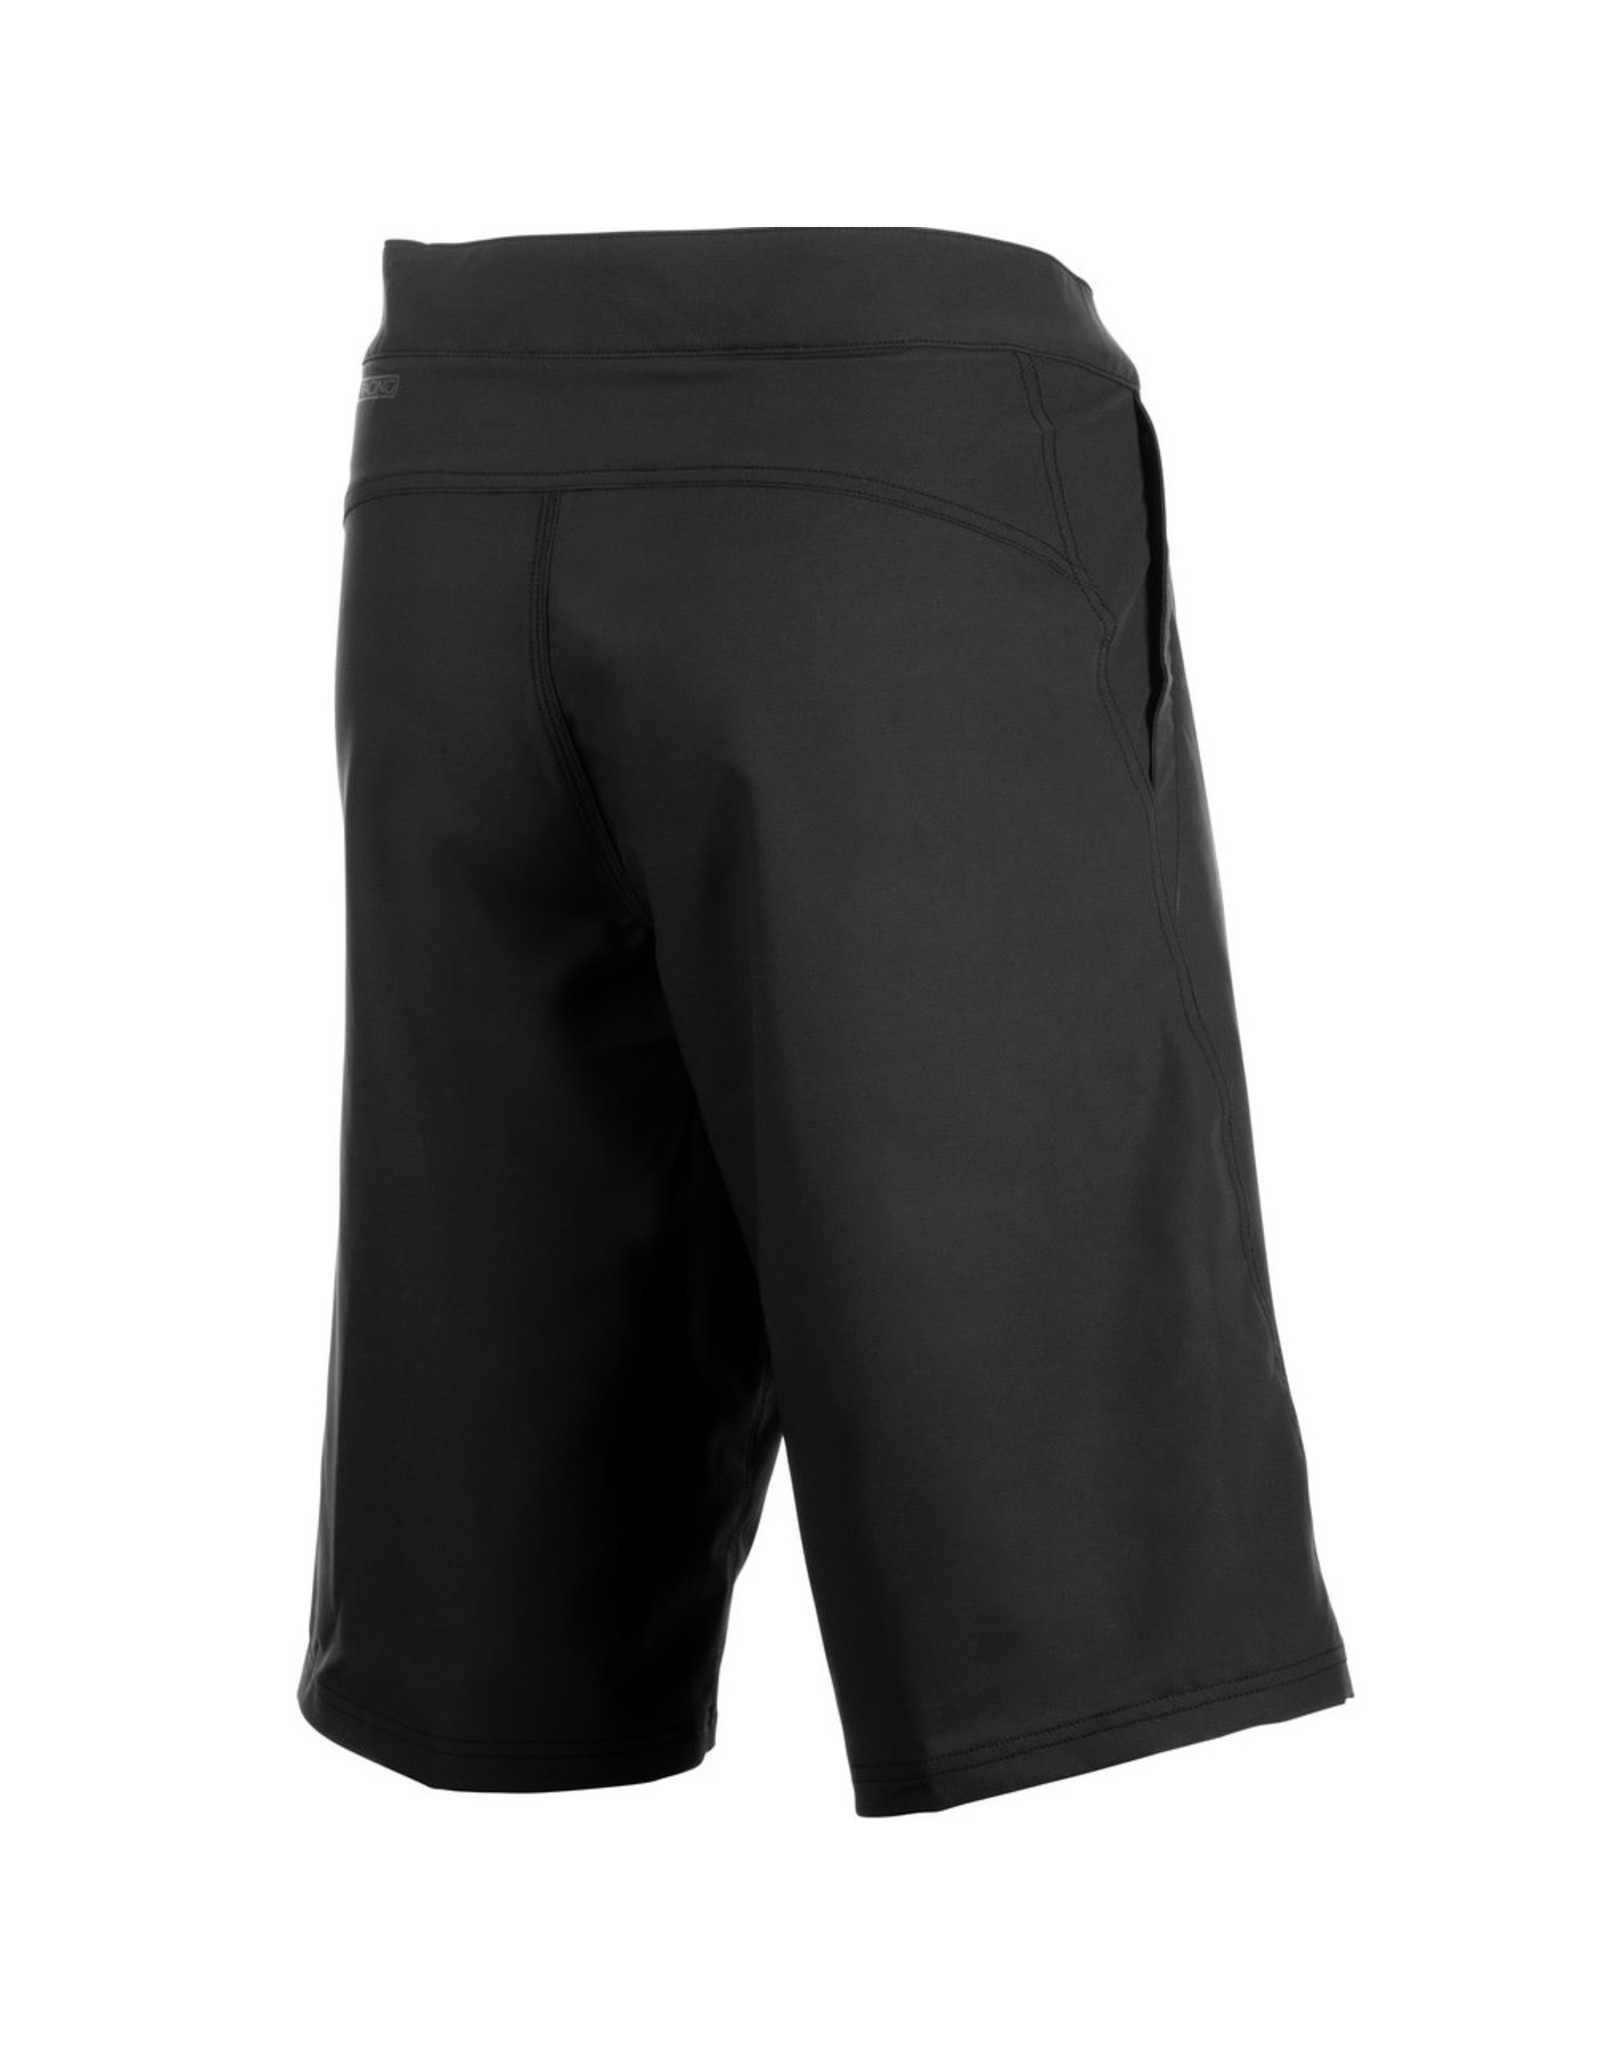 FLY RACING 2020 (Old) Fly Racing Maverik Short w/ Liner